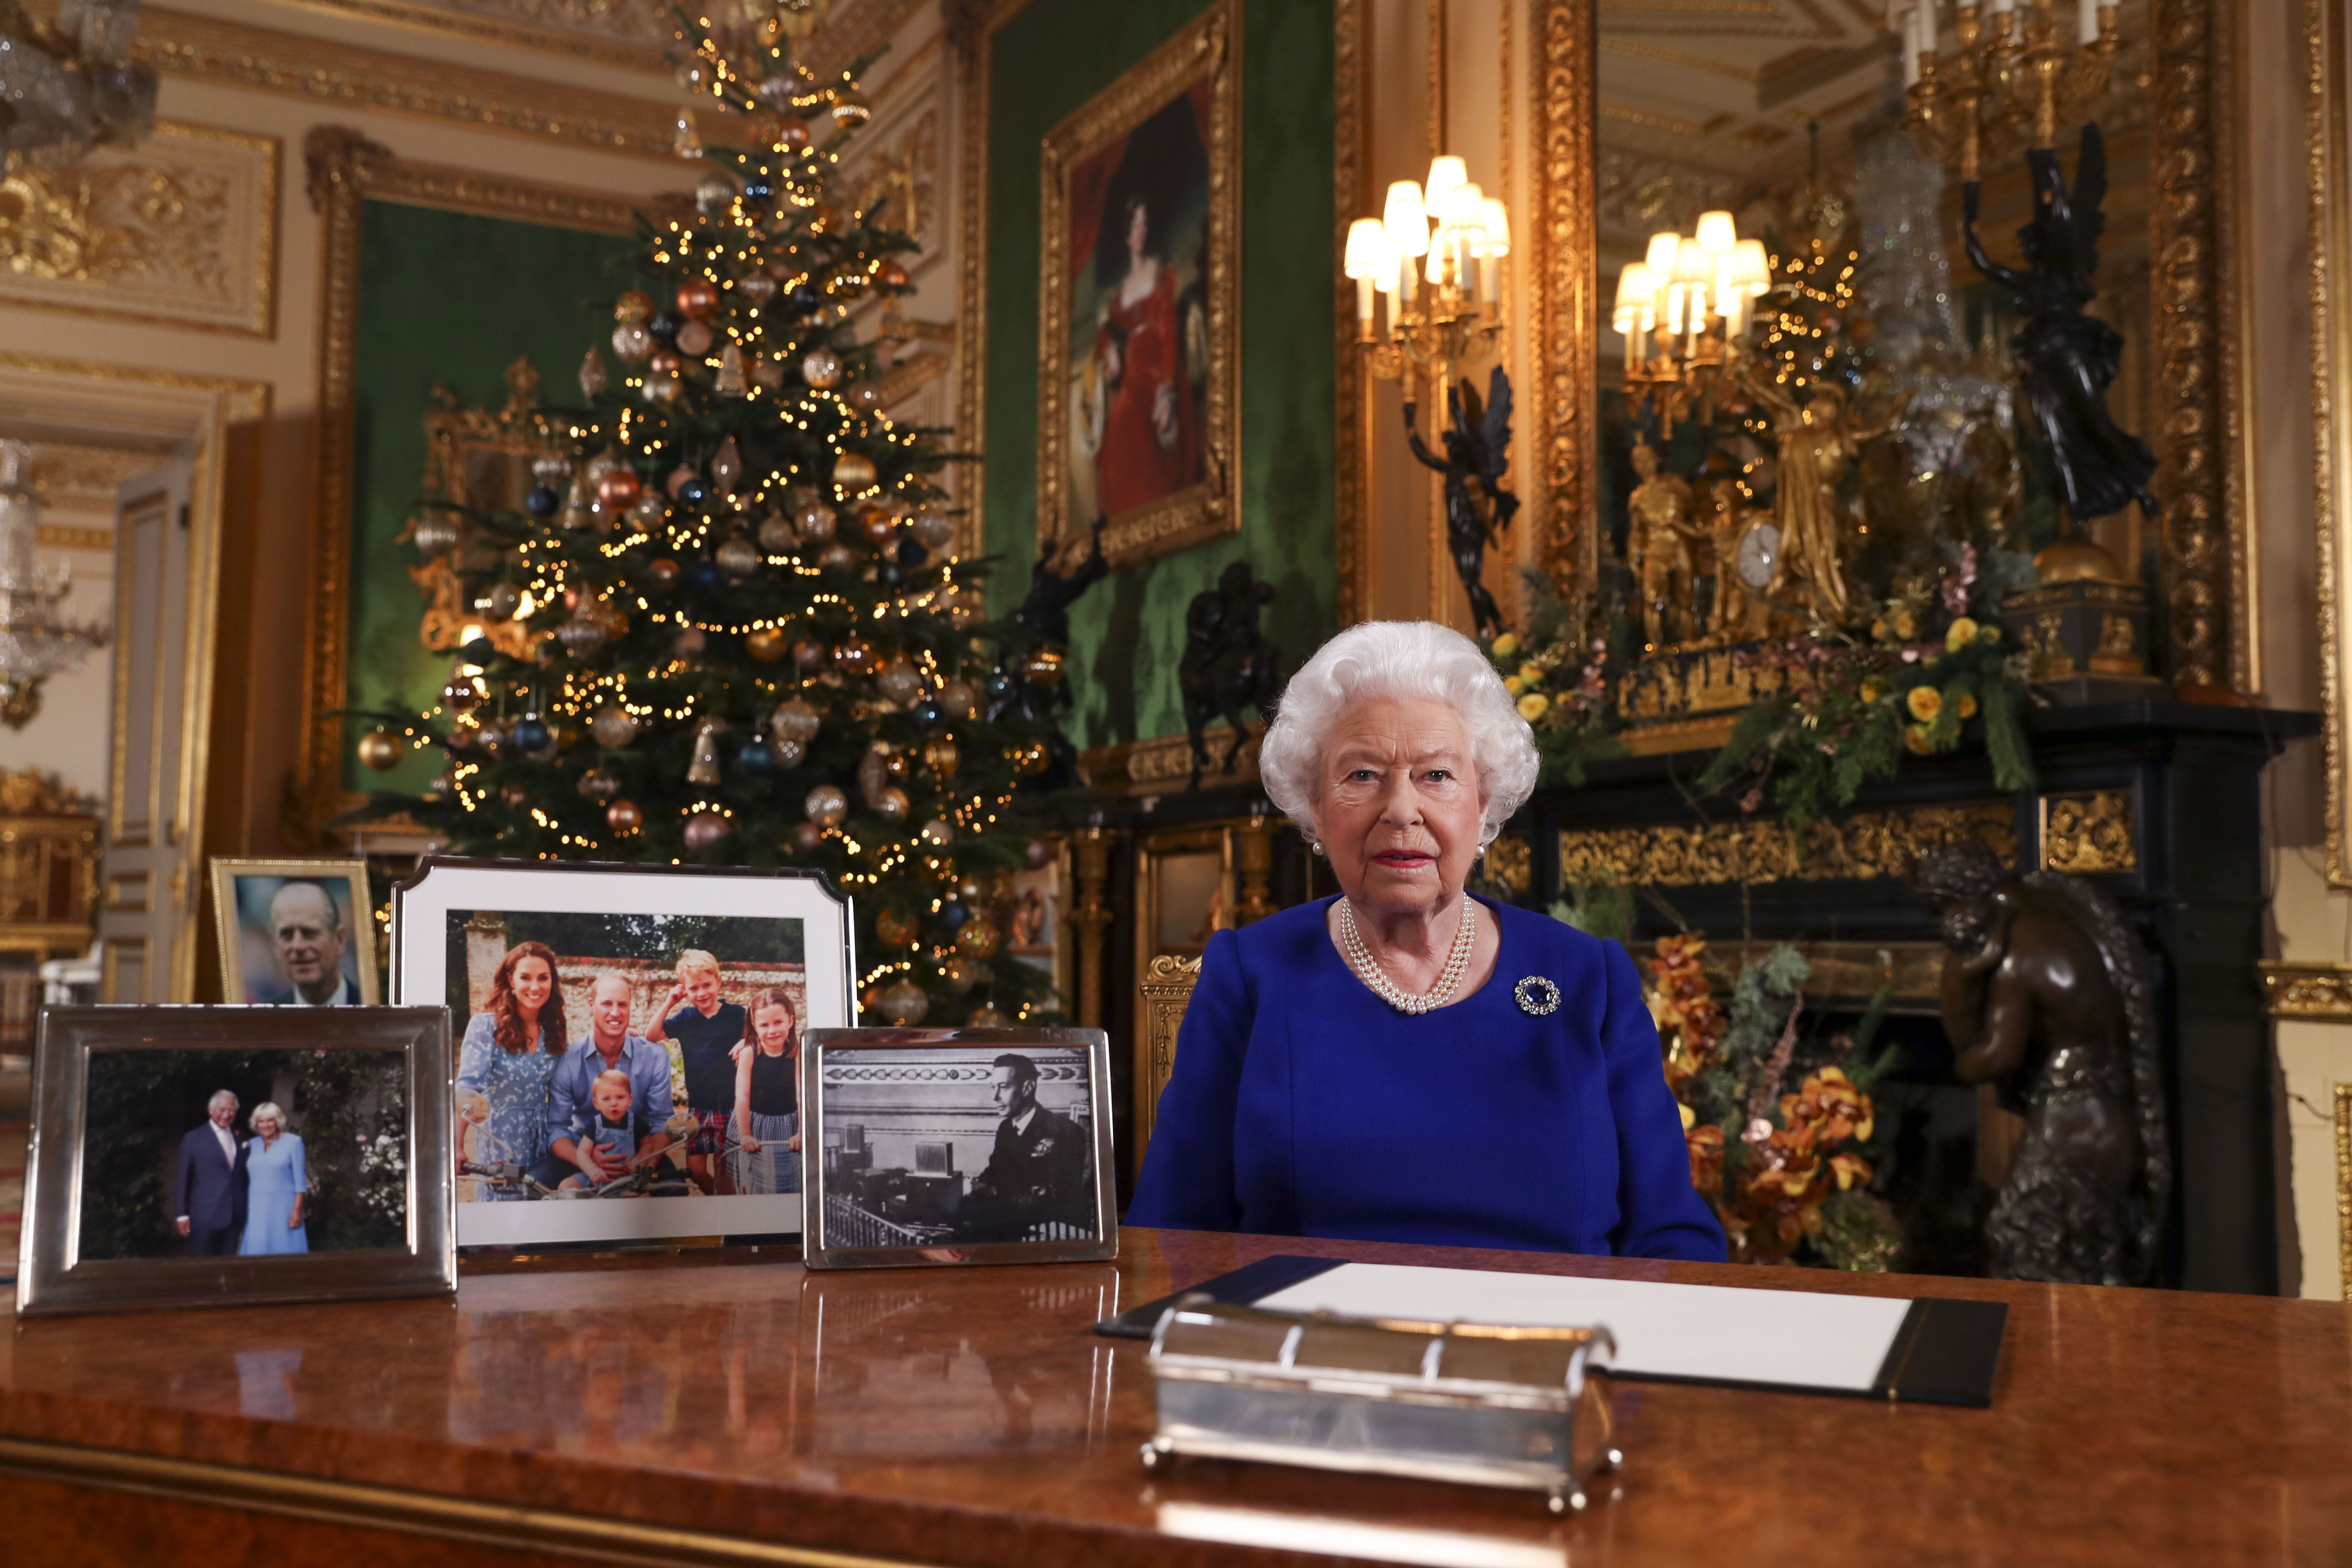 The Queens Christmas Speech 2020 Read Queen Elizabeth's 2019 Christmas Message Transcript About the